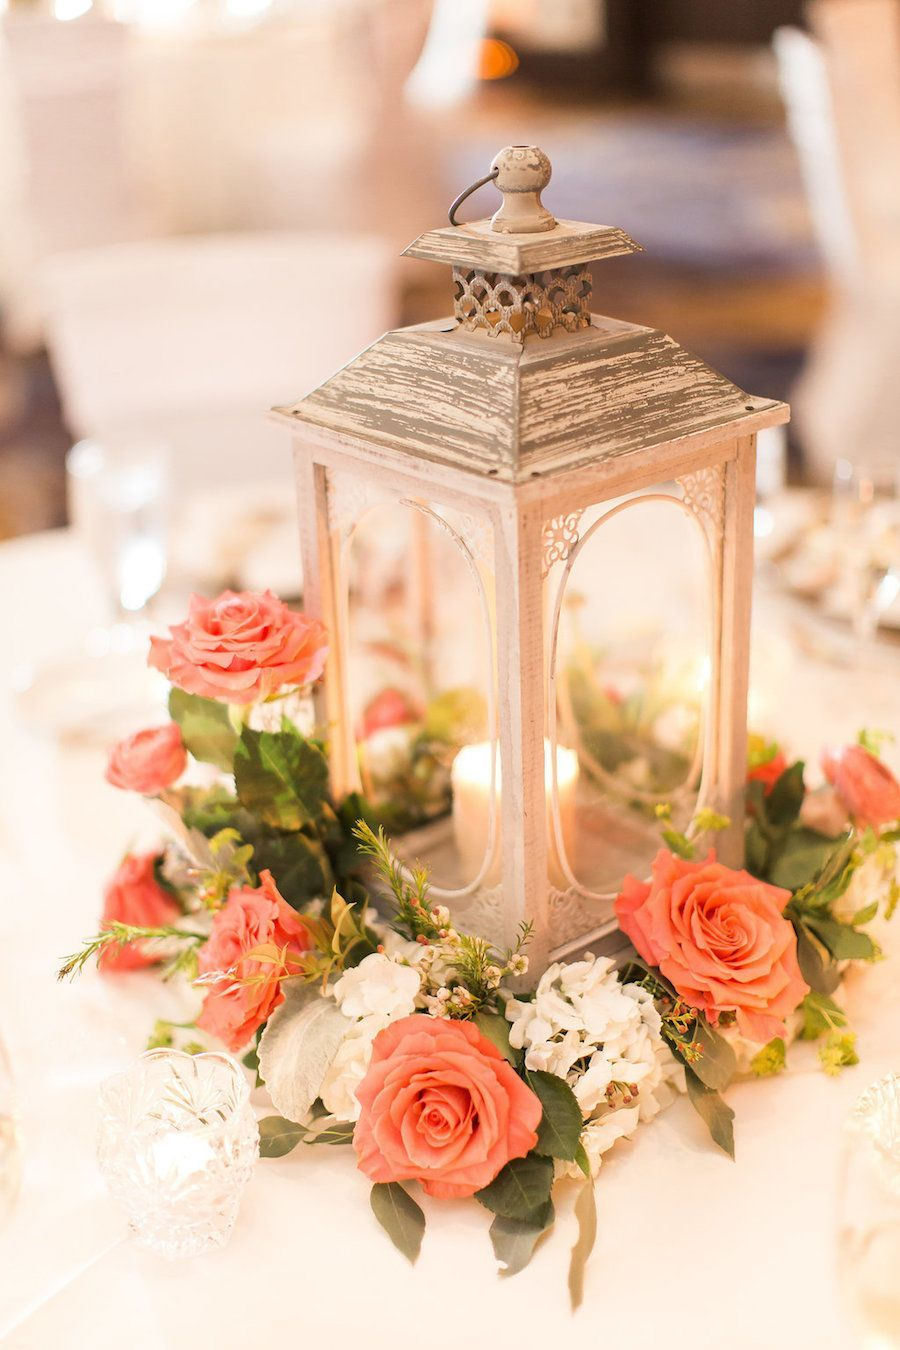 Best Wedding Centerpieces of 2017 - Belle The Magazine